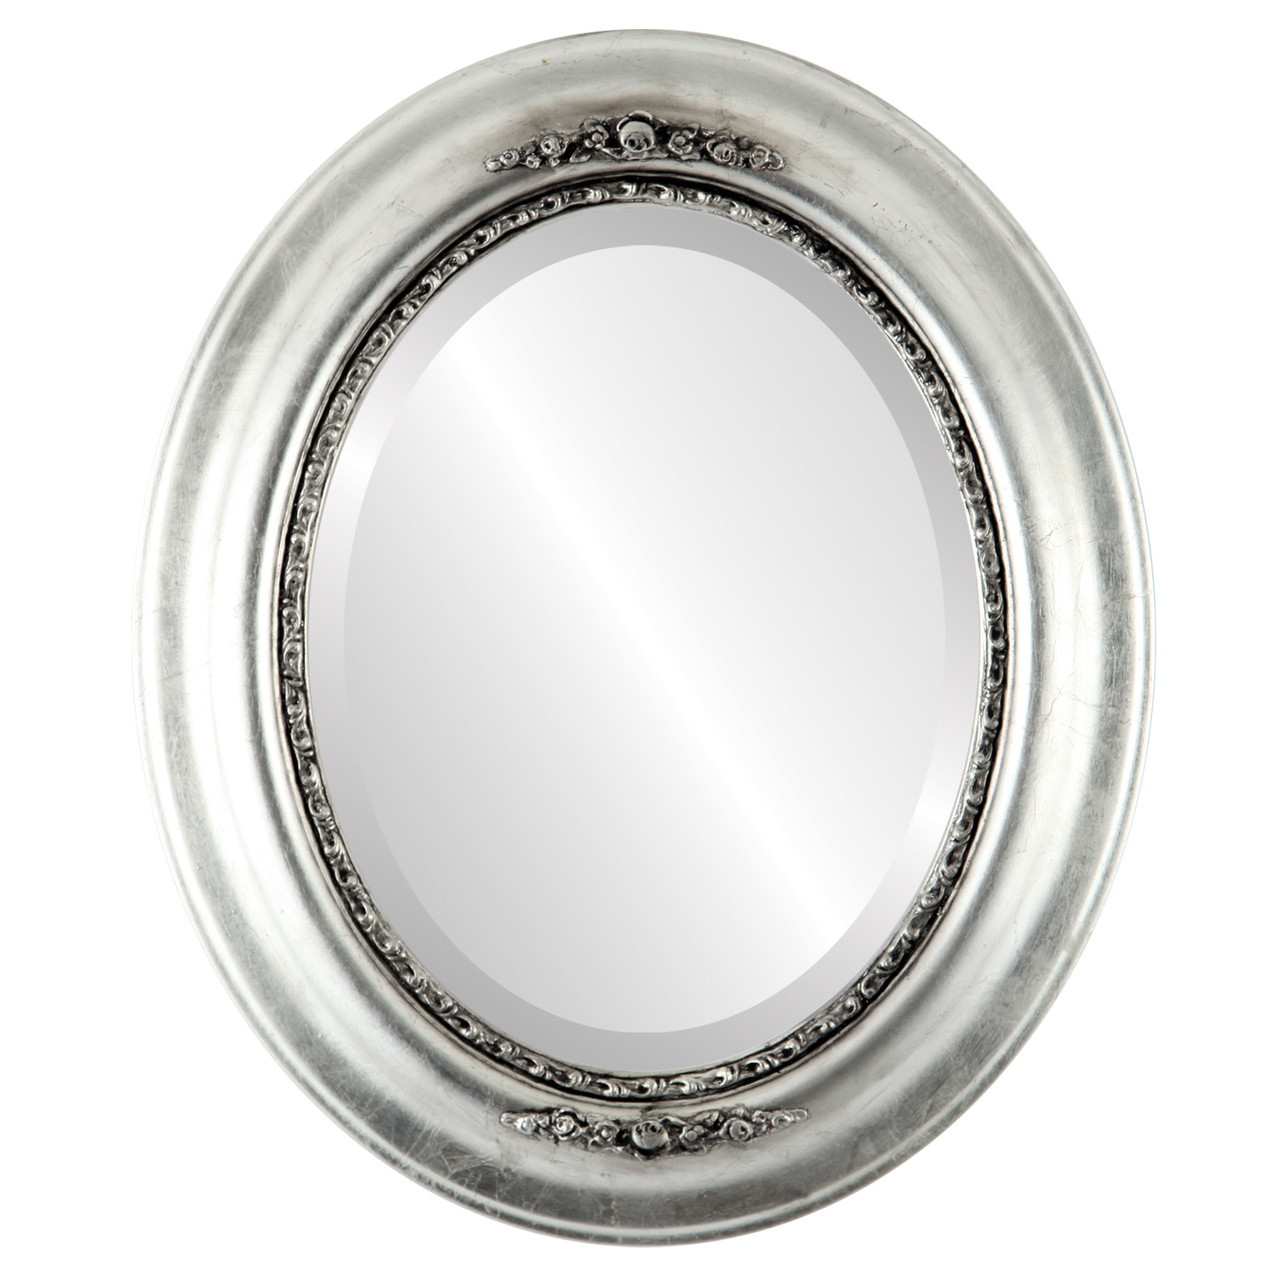 Vintage Silver Oval Mirrors from $177 | Free Shipping